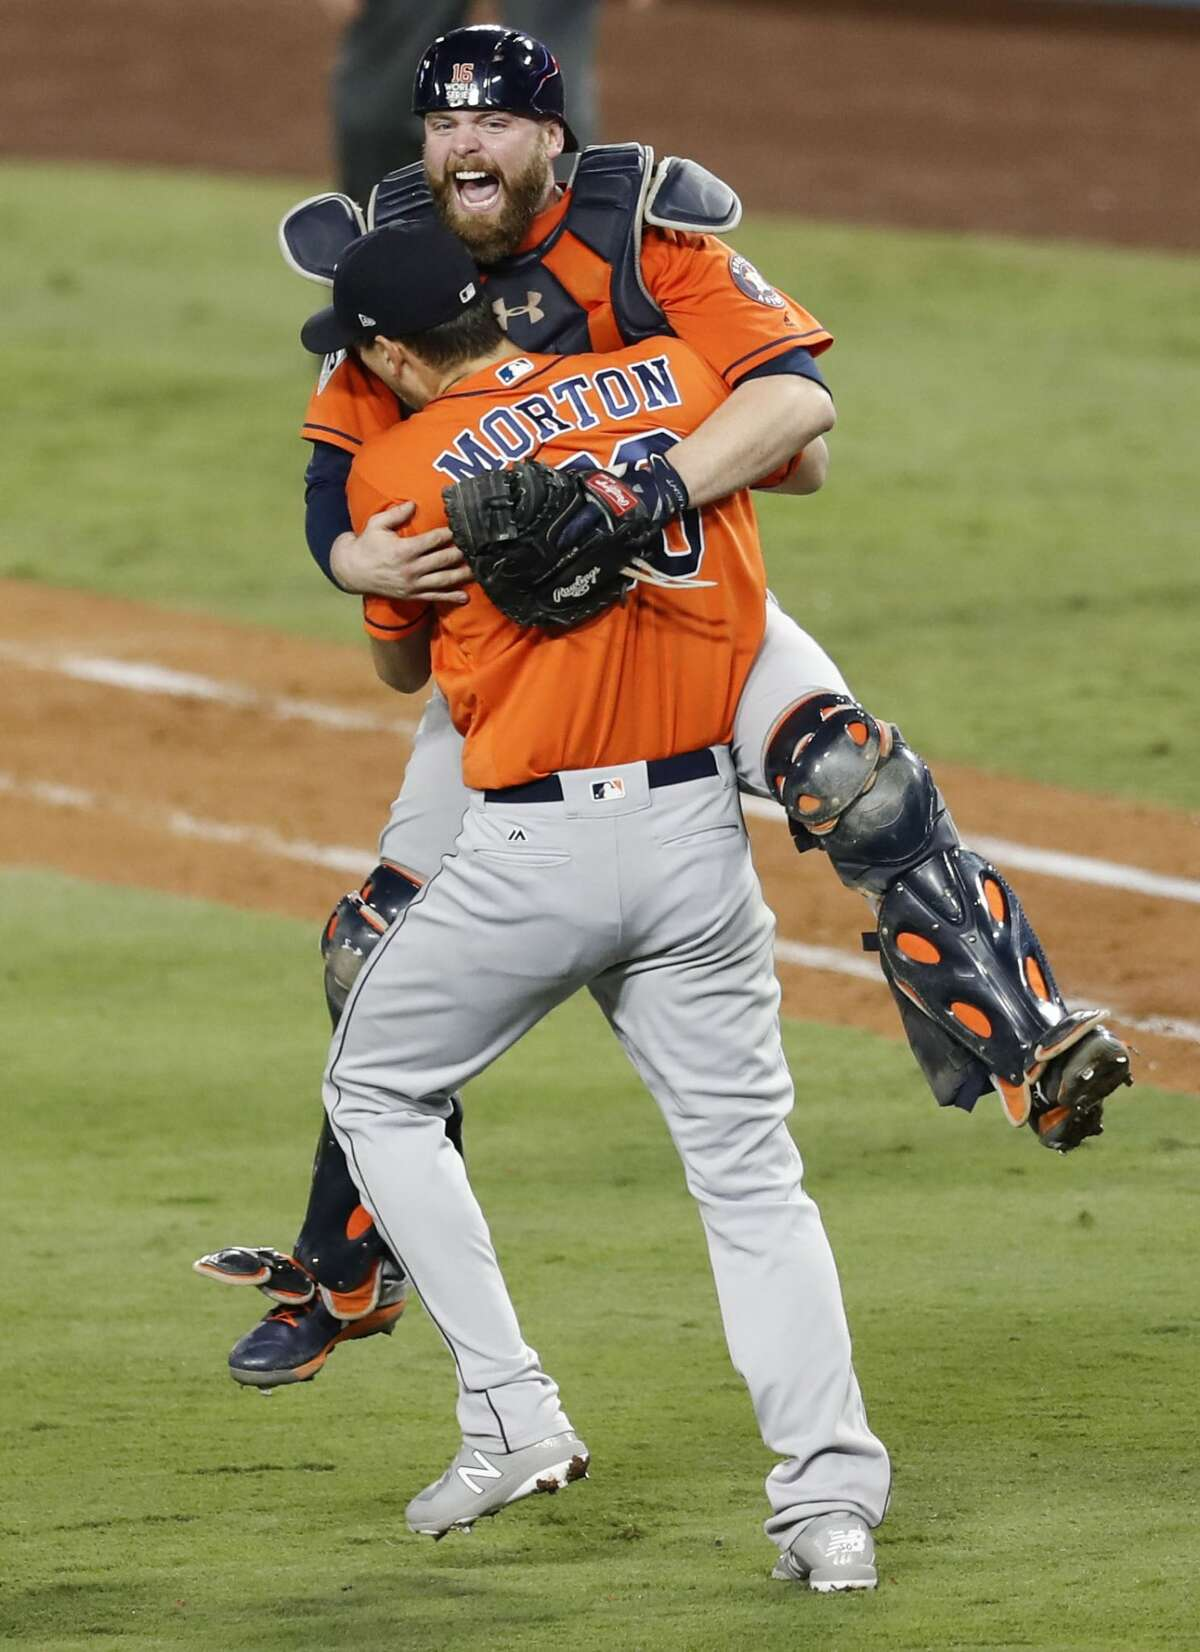 Houston Astros catcher Brian McCann (16) and pitcher Charlie Morton (50) celebrate the Houston Astros win over the Los Angeles Dodgers 5-1 in Game 7 of the World Series at Dodger Stadium on Wednesday, Nov. 1, 2017, in Los Angeles. The Astros took the Series 4-games-to-3 to capture the franchise's first title.